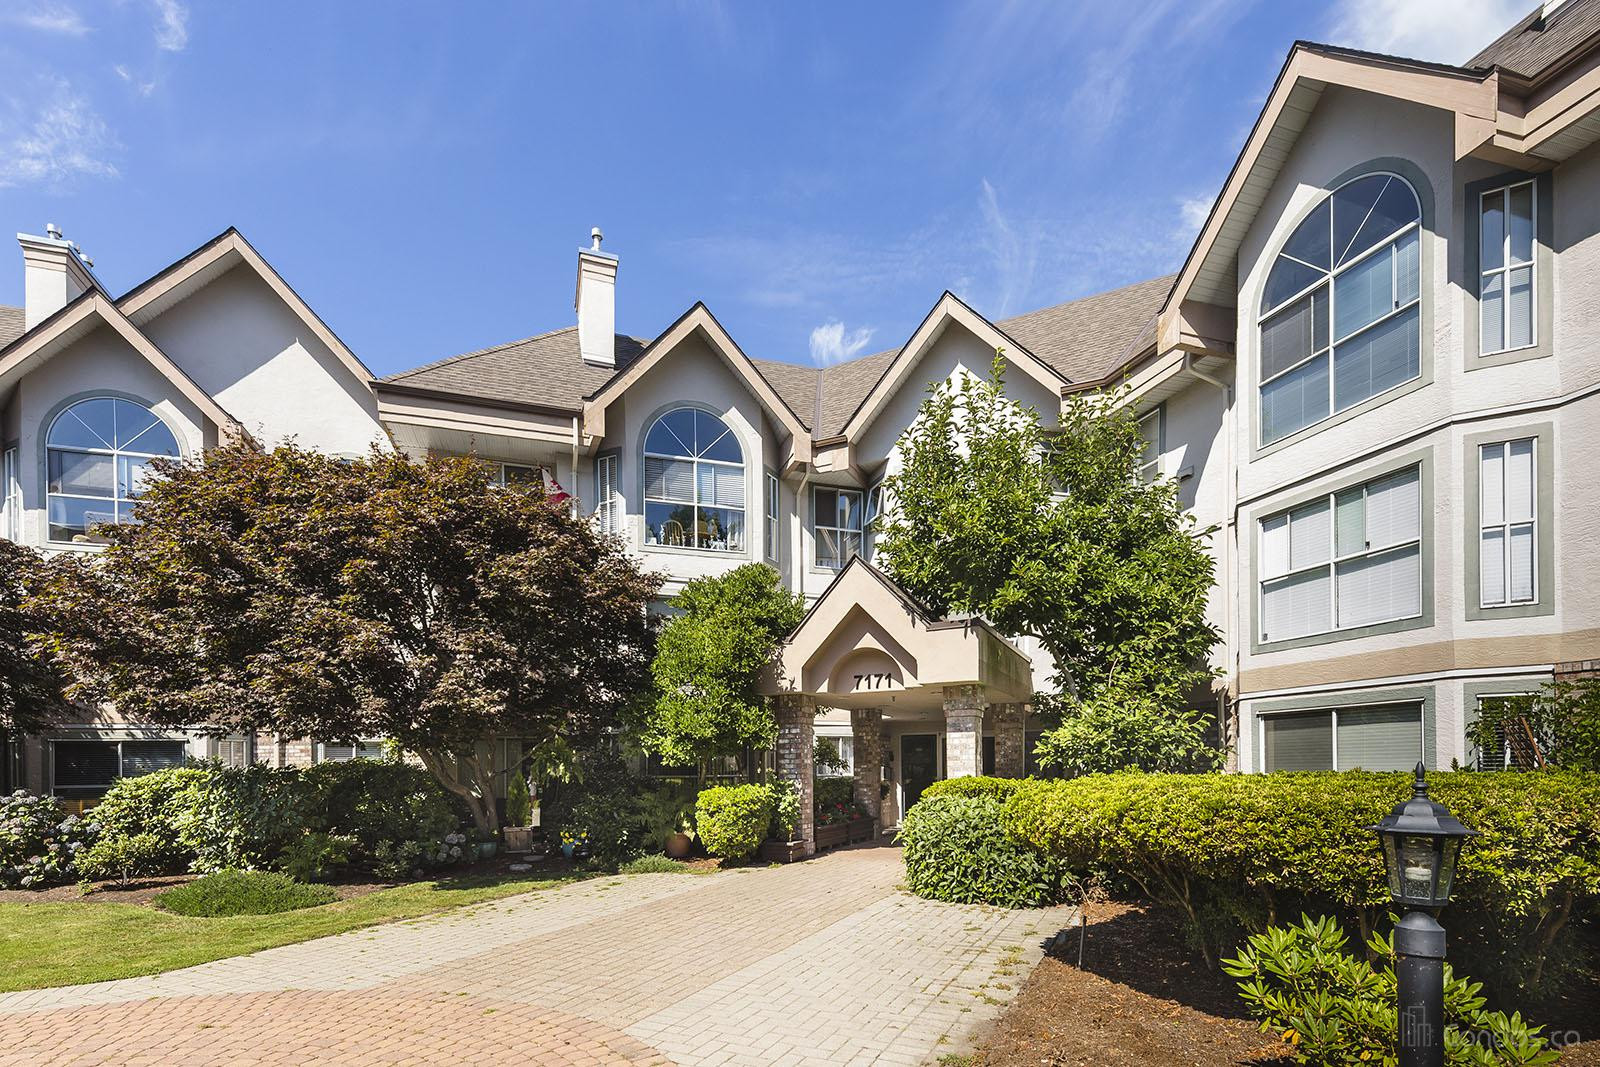 The Highlands at 7151 121 St, Surrey 1